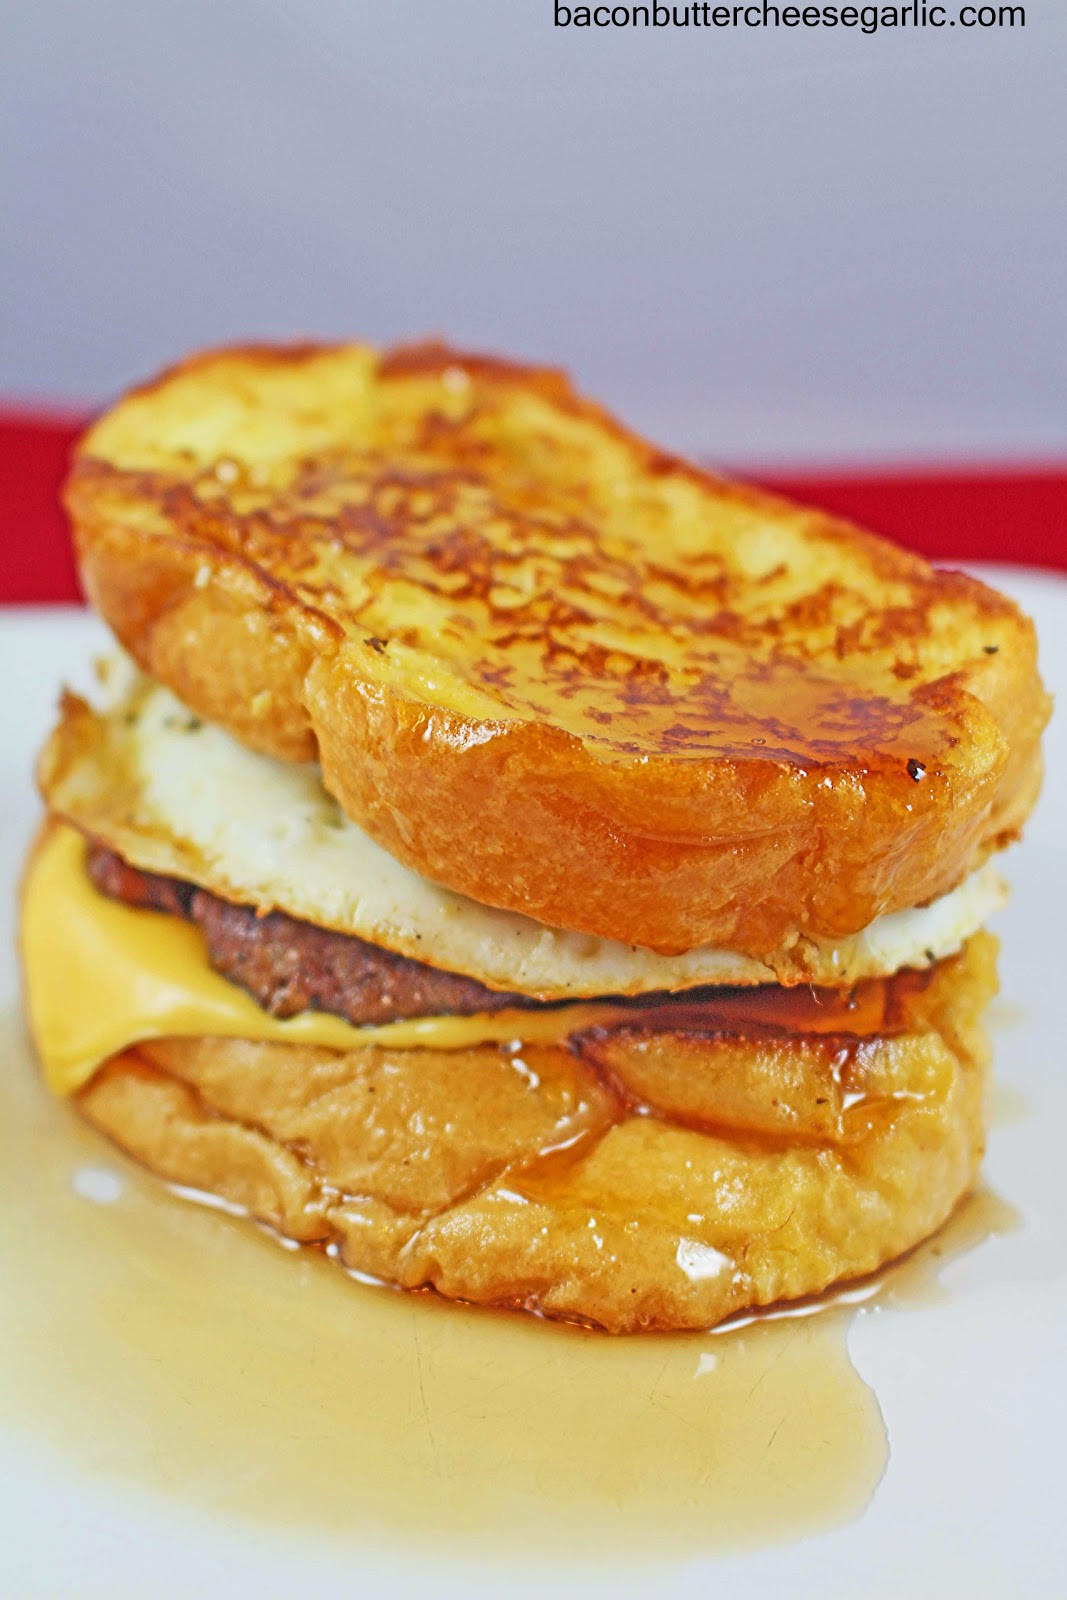 French Toast Sandwich  Bacon Butter Cheese & Garlic French Toast Sandwiches